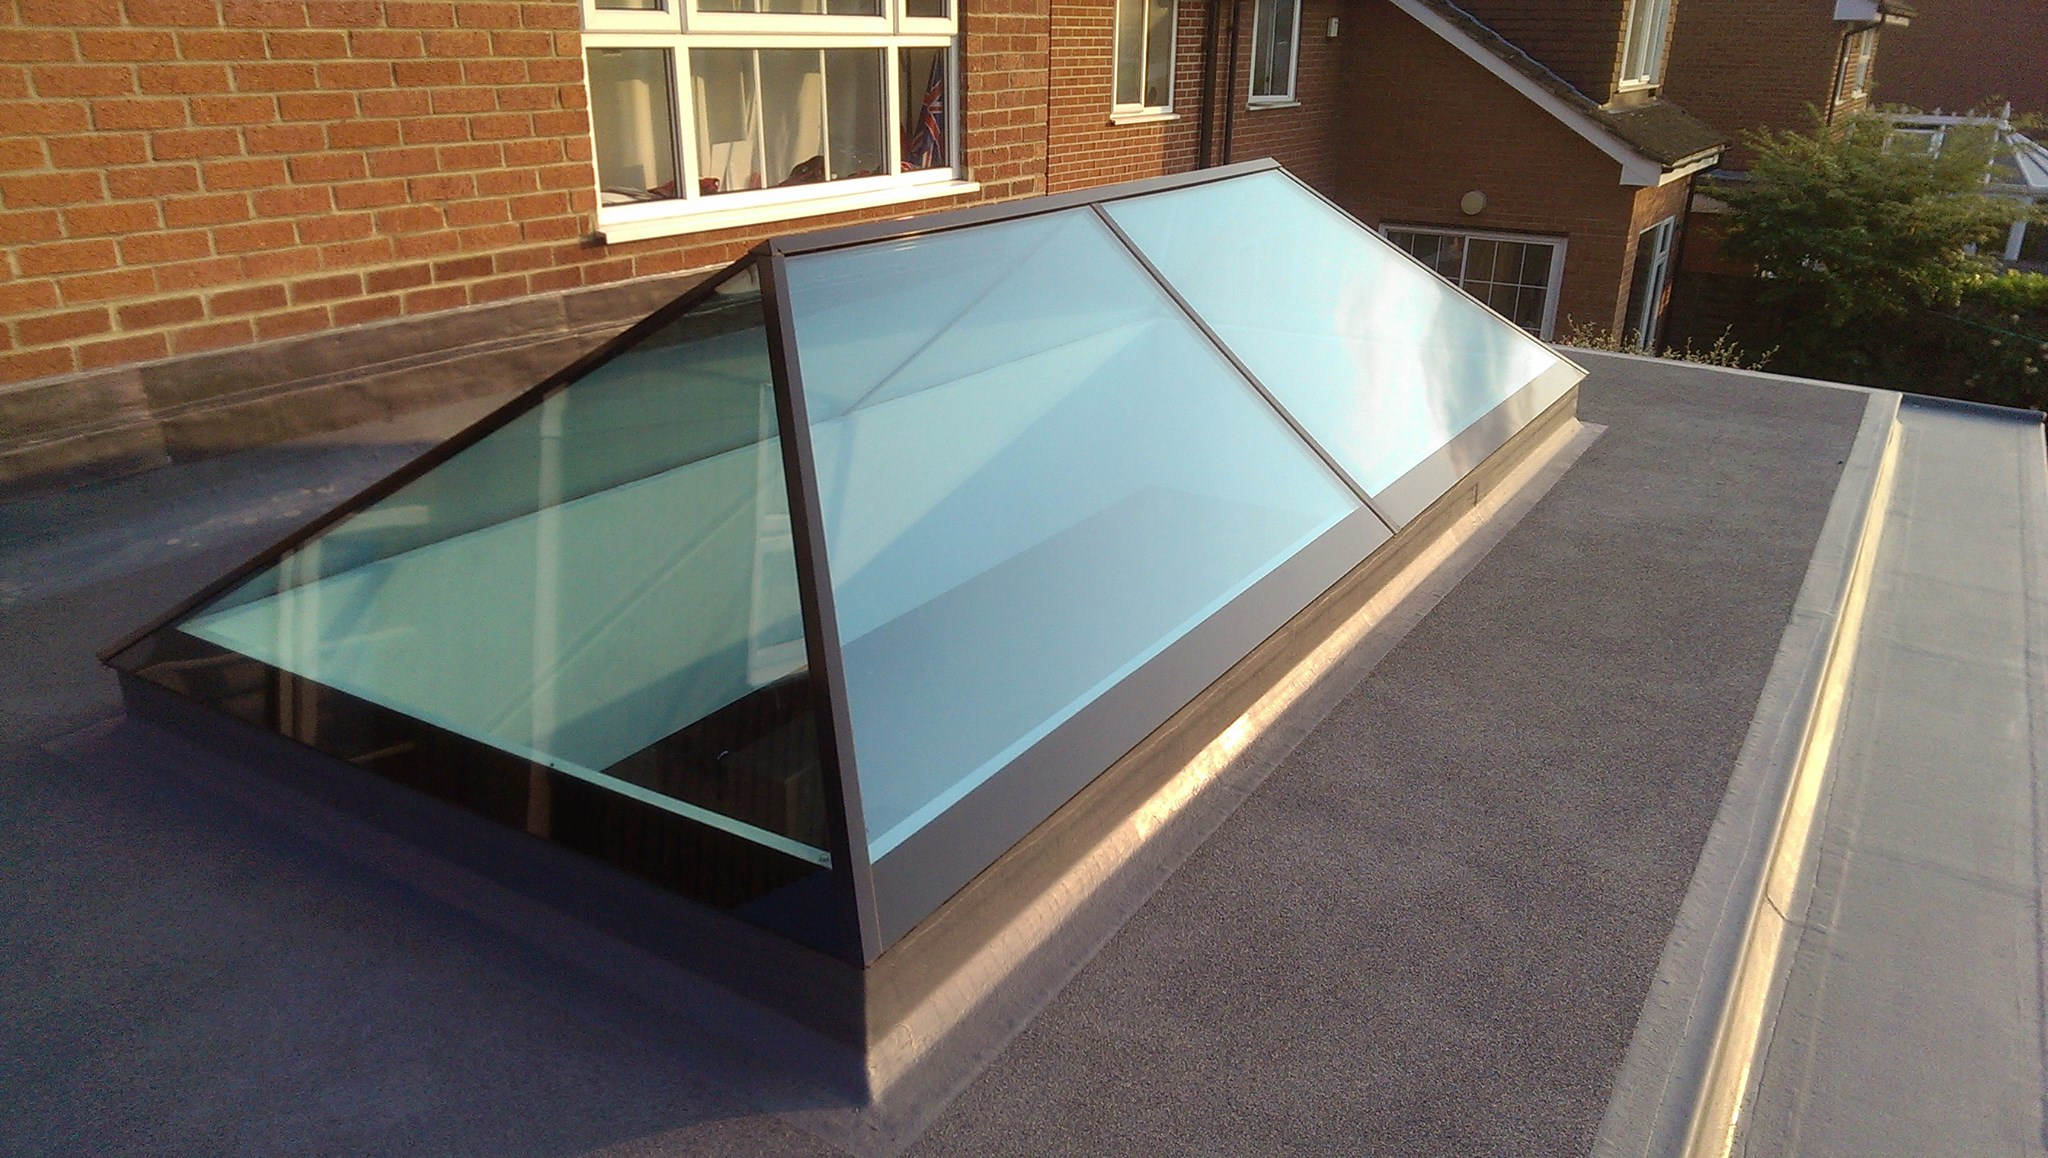 Aston Windows Systems Limited